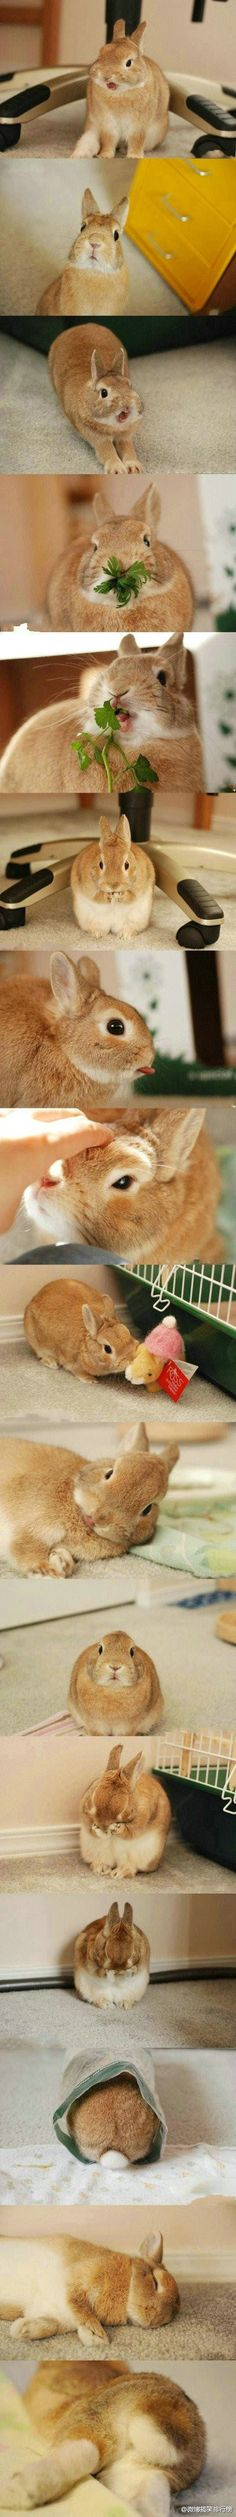 great pics of a bunny and all the cute things it does. I want a bunny now. Funny Bunnies, Baby Bunnies, Cute Bunny, Bunny Pics, Kawaii Bunny, Bunny Rabbits, Animals And Pets, Baby Animals, Funny Animals